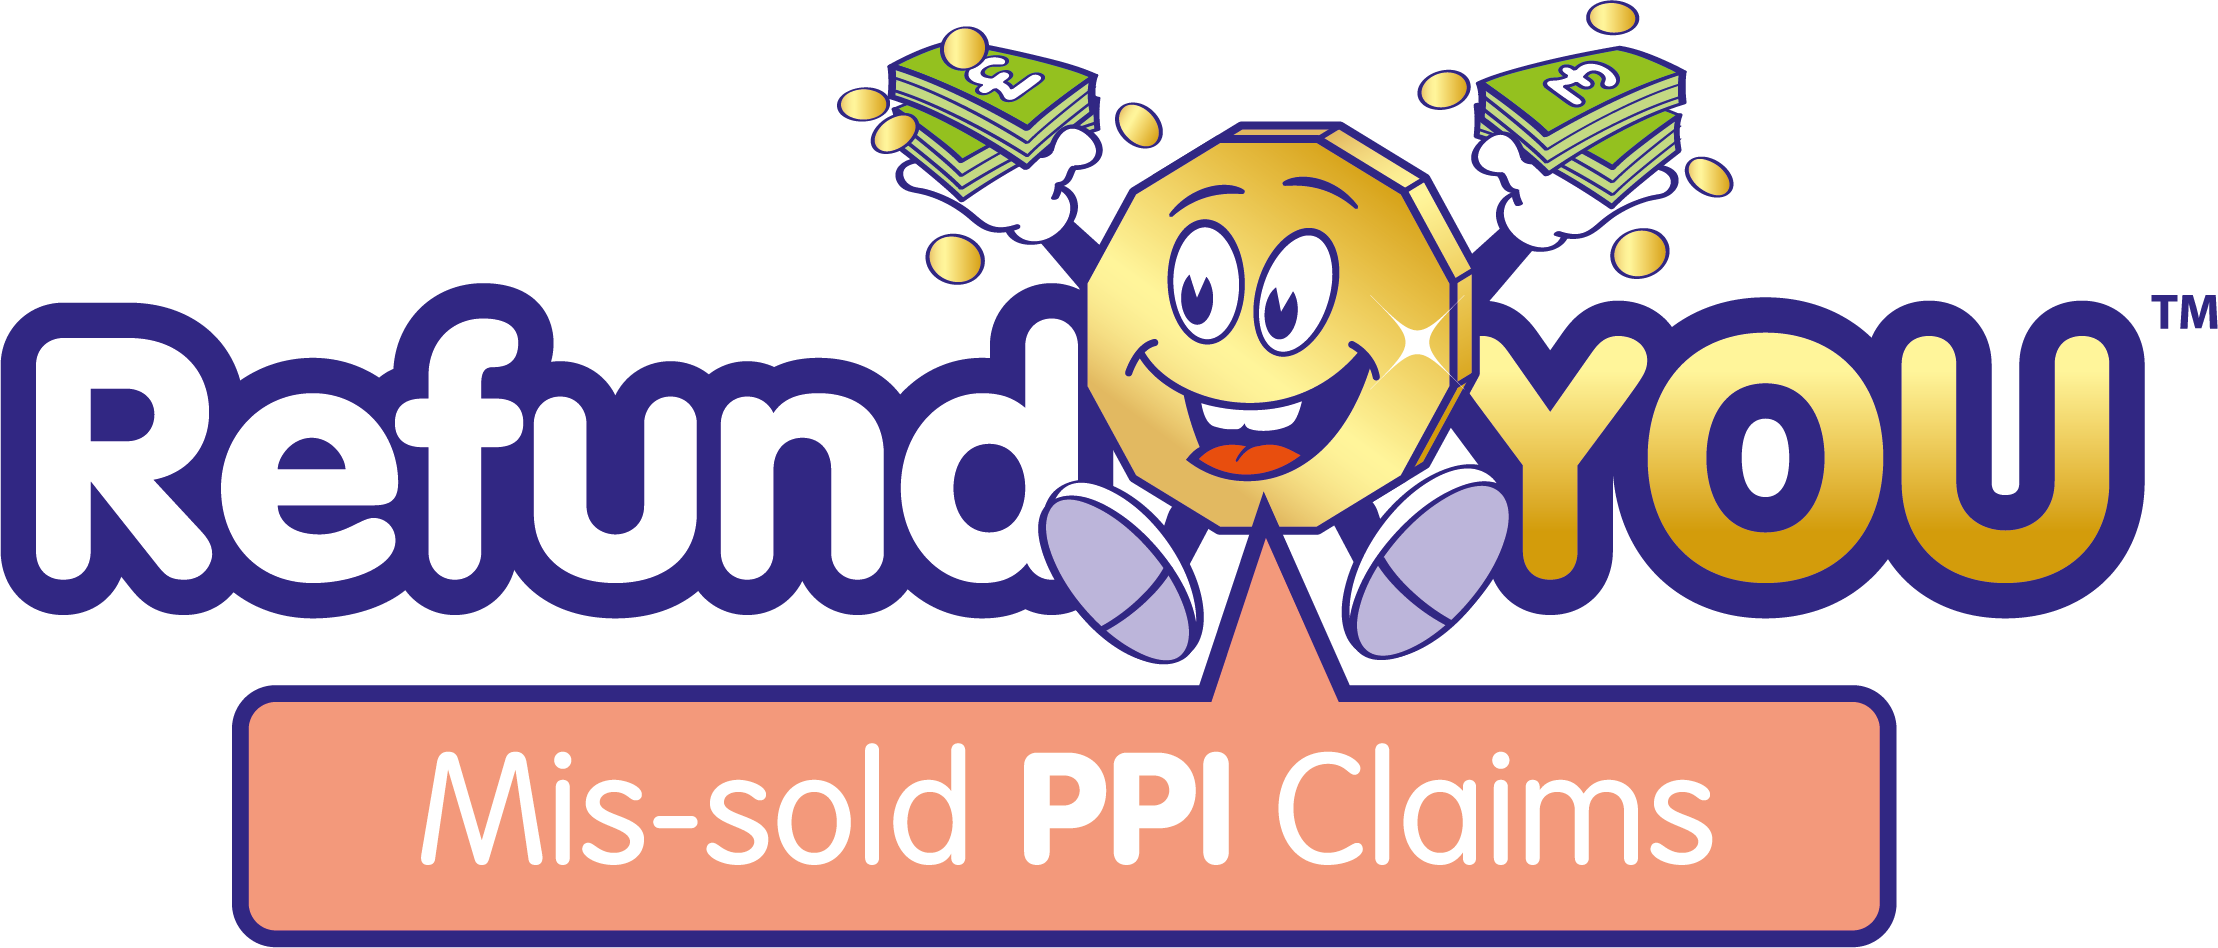 http://www.refundyou.co.uk/financial-claims/ppi